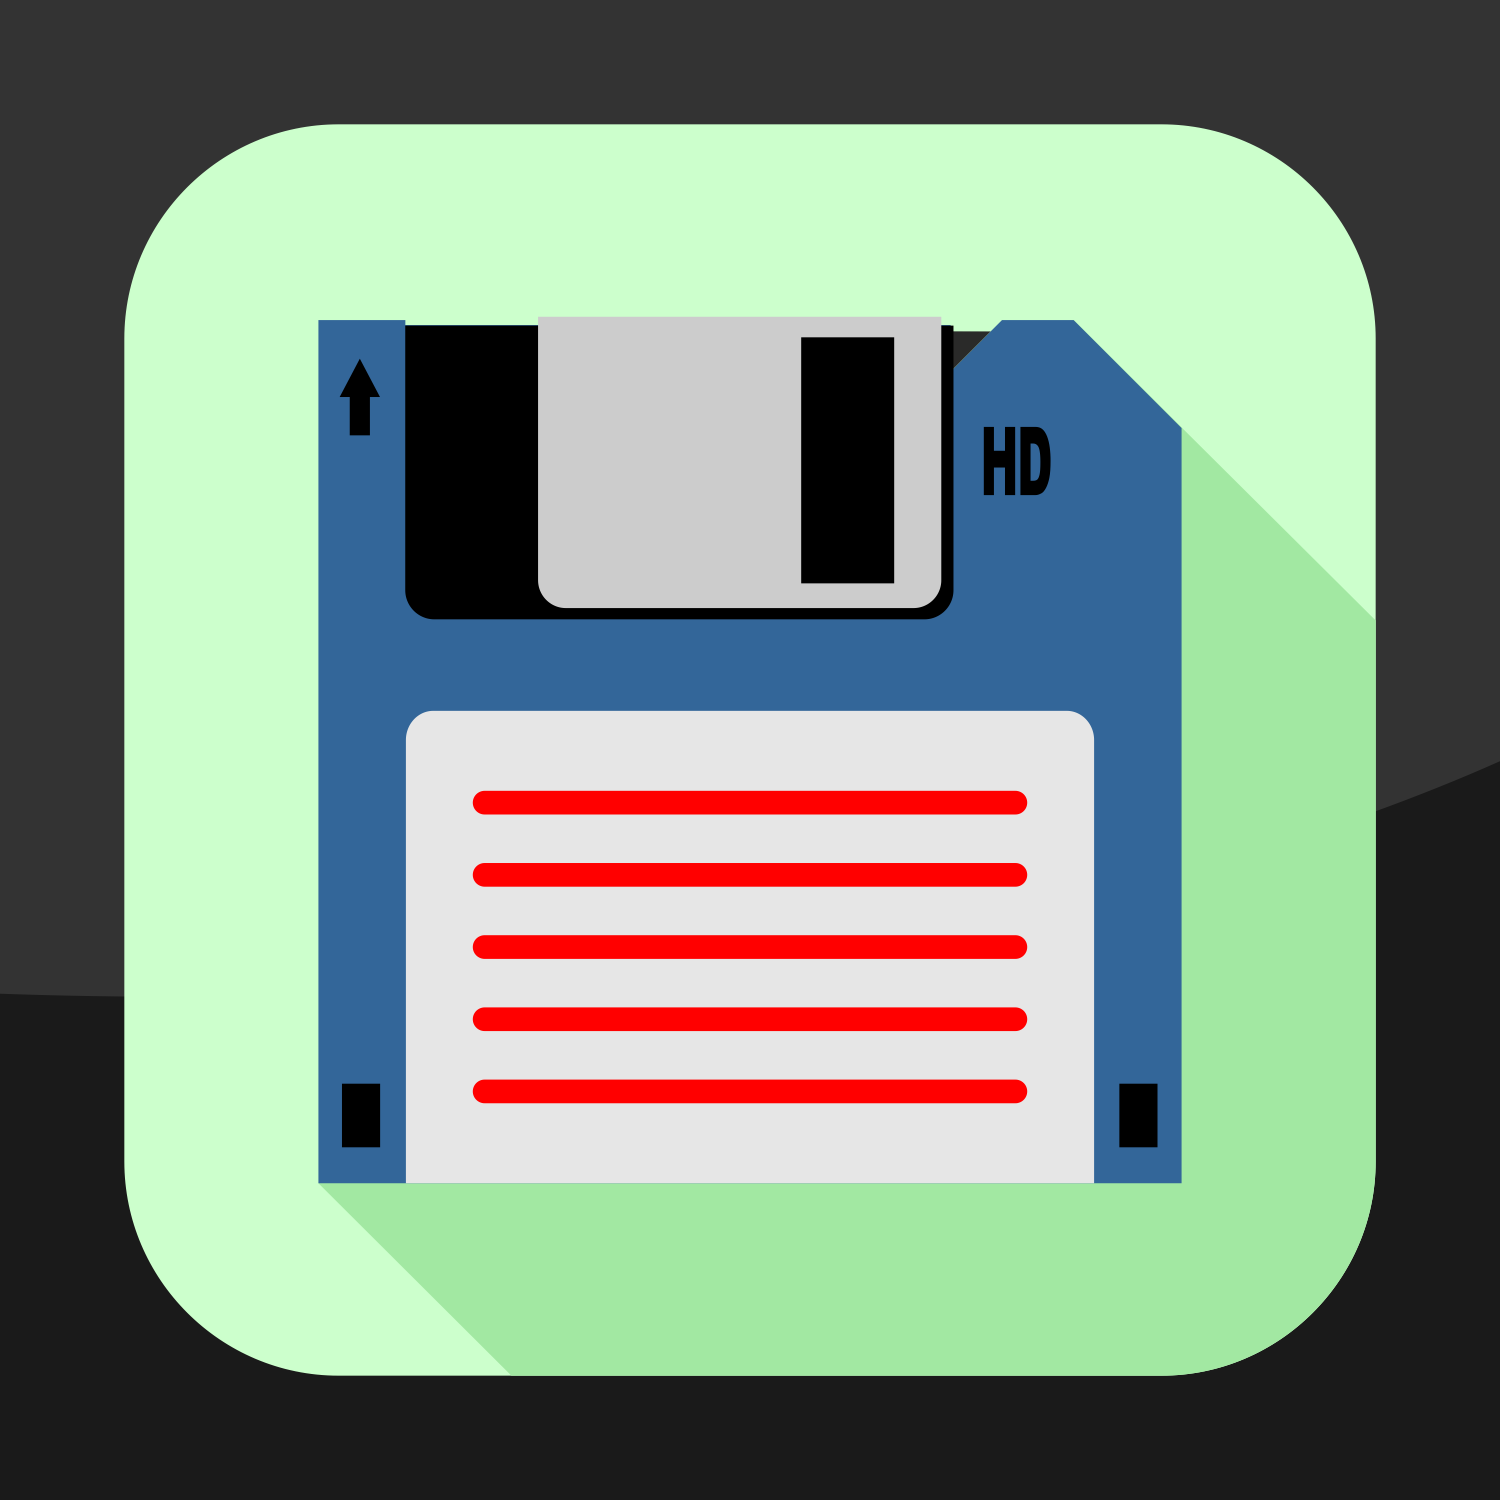 Vector for free use: Flat floppy disk icon